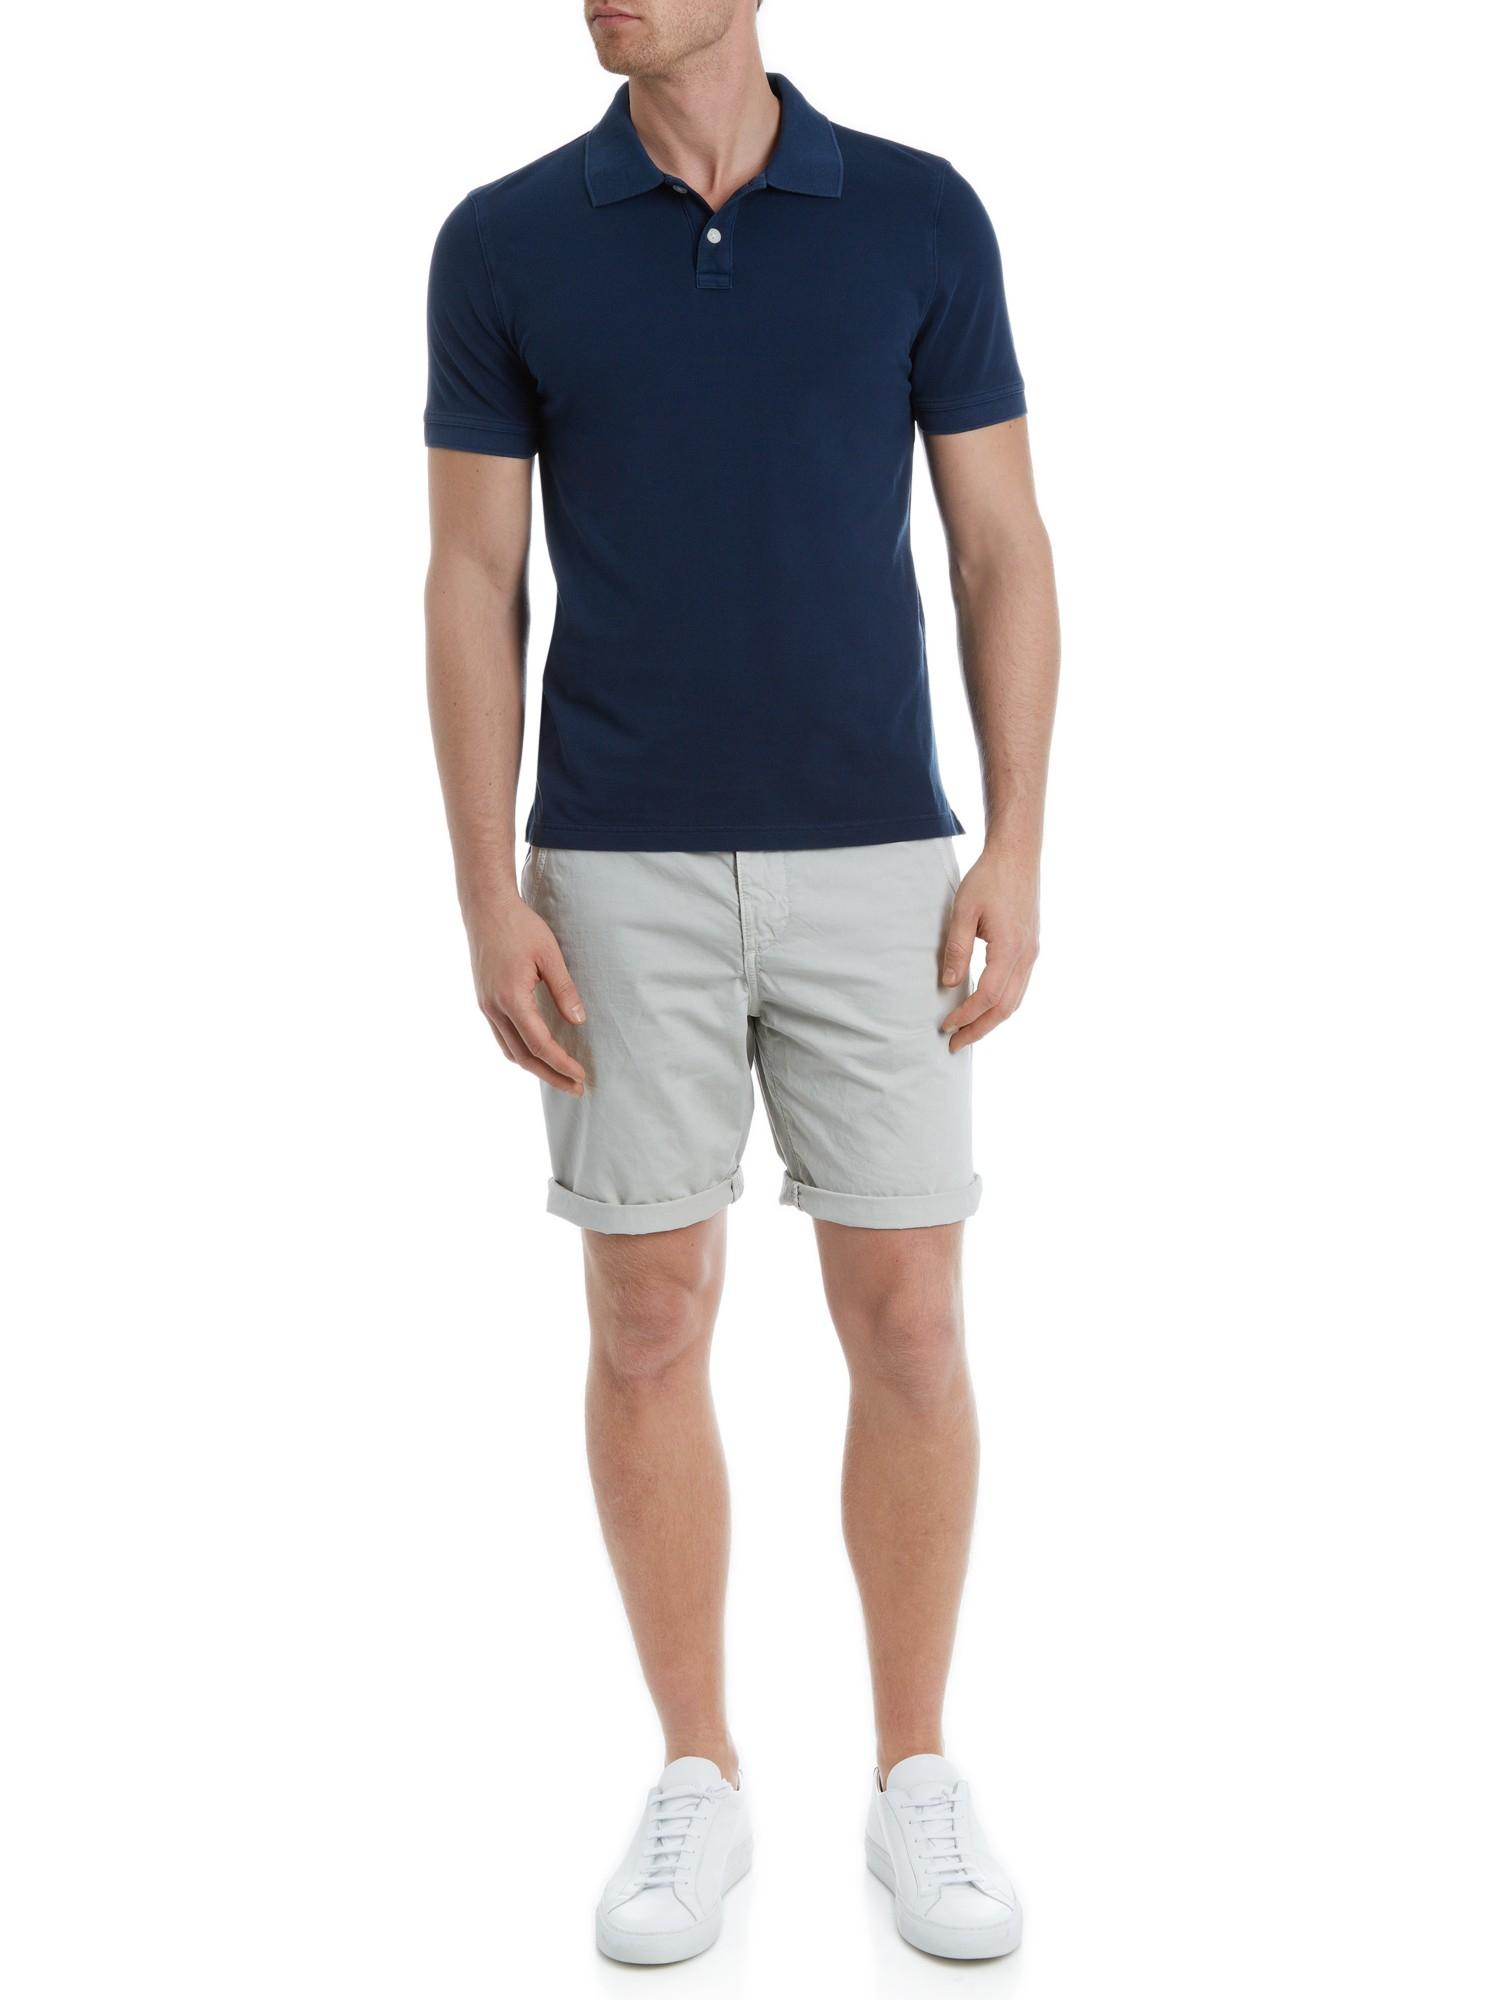 Jaeger Garment Dyed Pique Polo Shirt in Navy (Blue) for Men